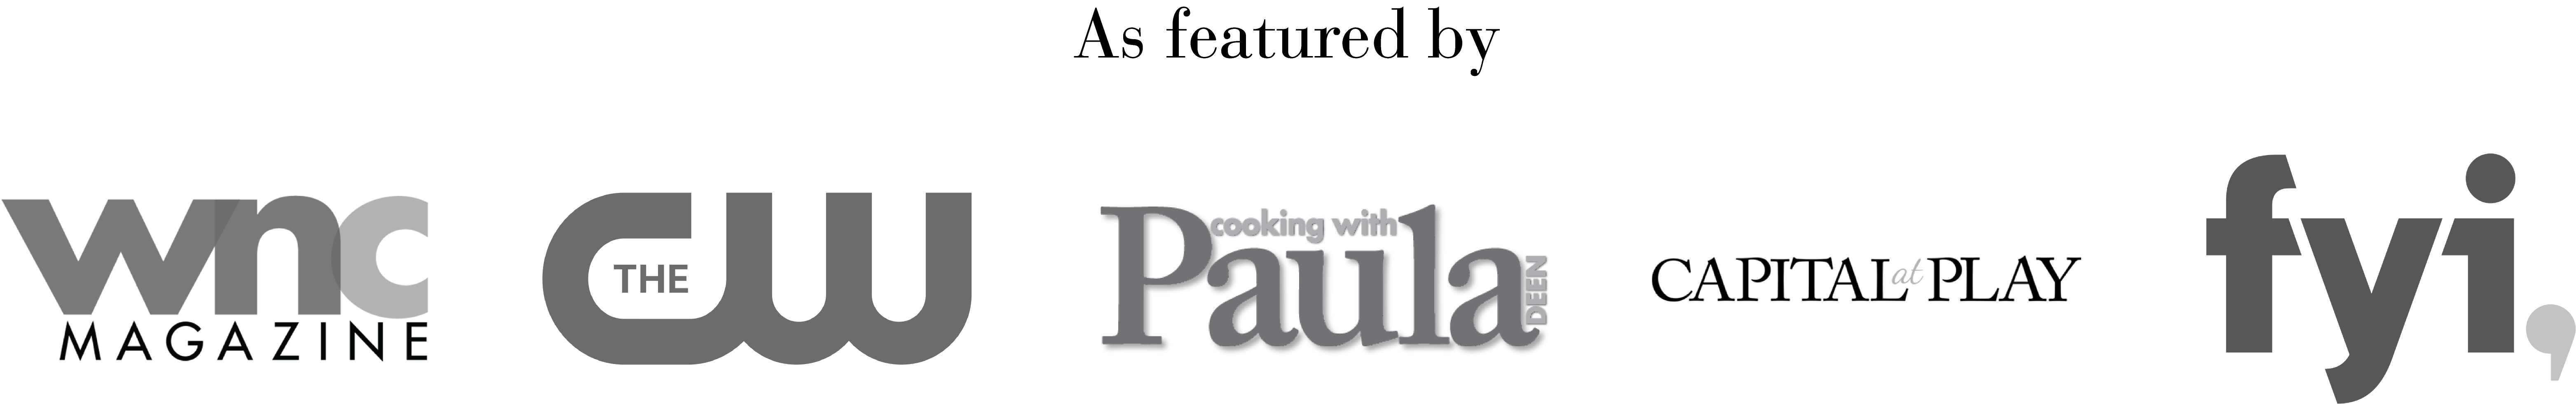 image of WNC magazine logo cooking with paula deen logo cw logo capital at play logo fyi channel logo